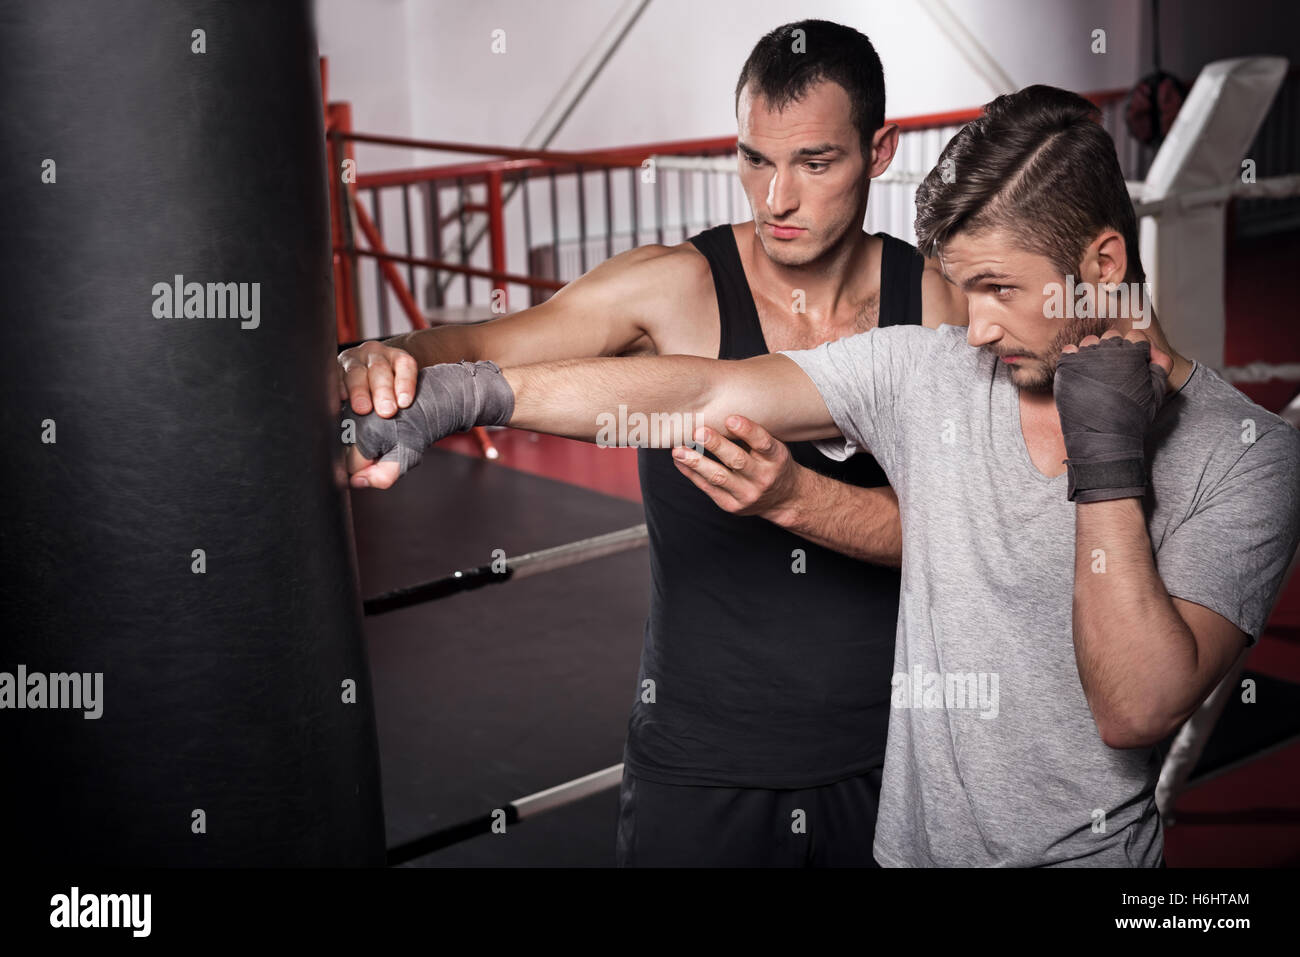 Trainer teaches how to punch a bag - Stock Image